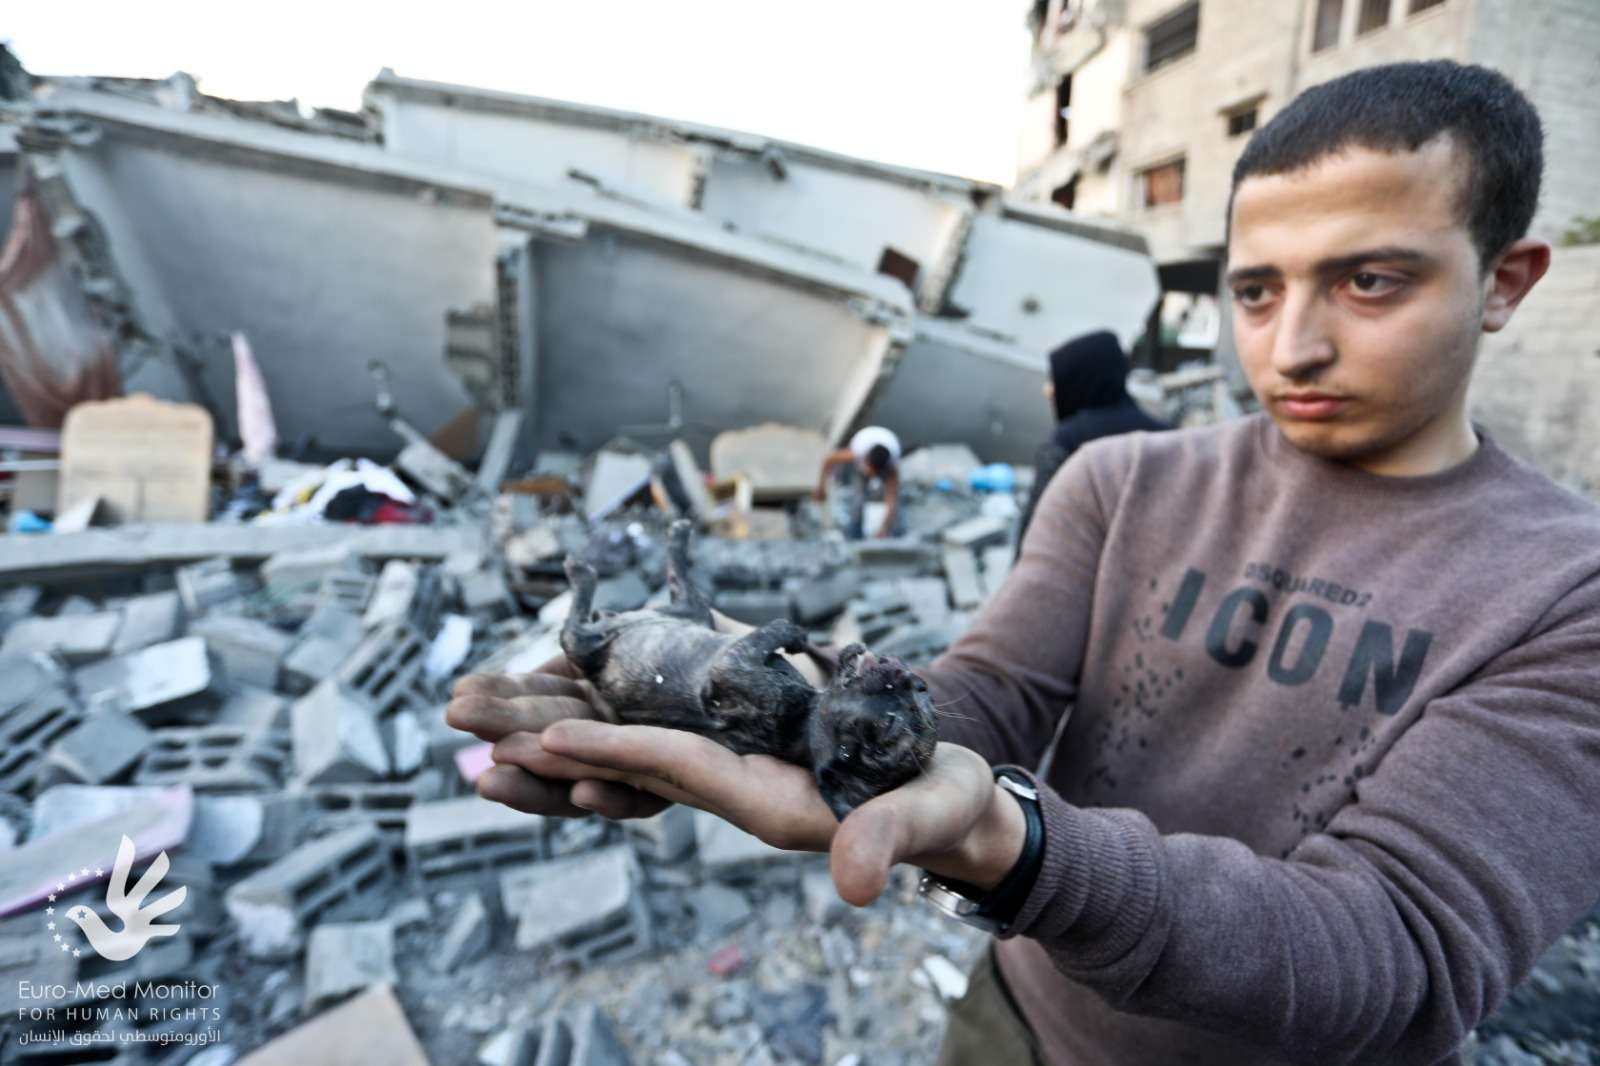 The Euro-Med Calls on Israel to uphold its commitments under international law and for the opening of investigations on the killing of civilians